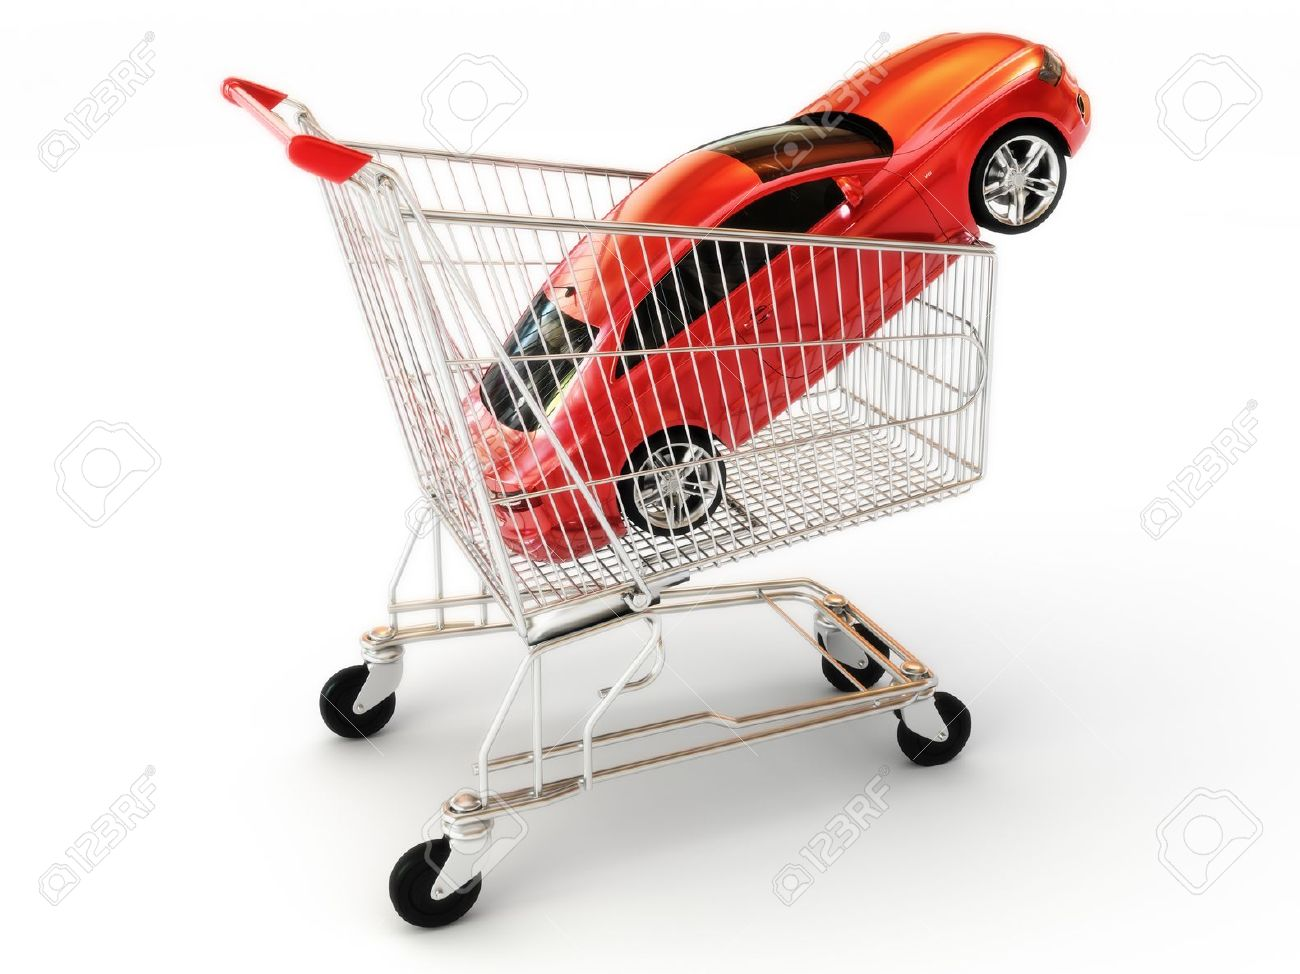 Car in shopping car clipart picture free Car in shopping car clipart - ClipartFox picture free